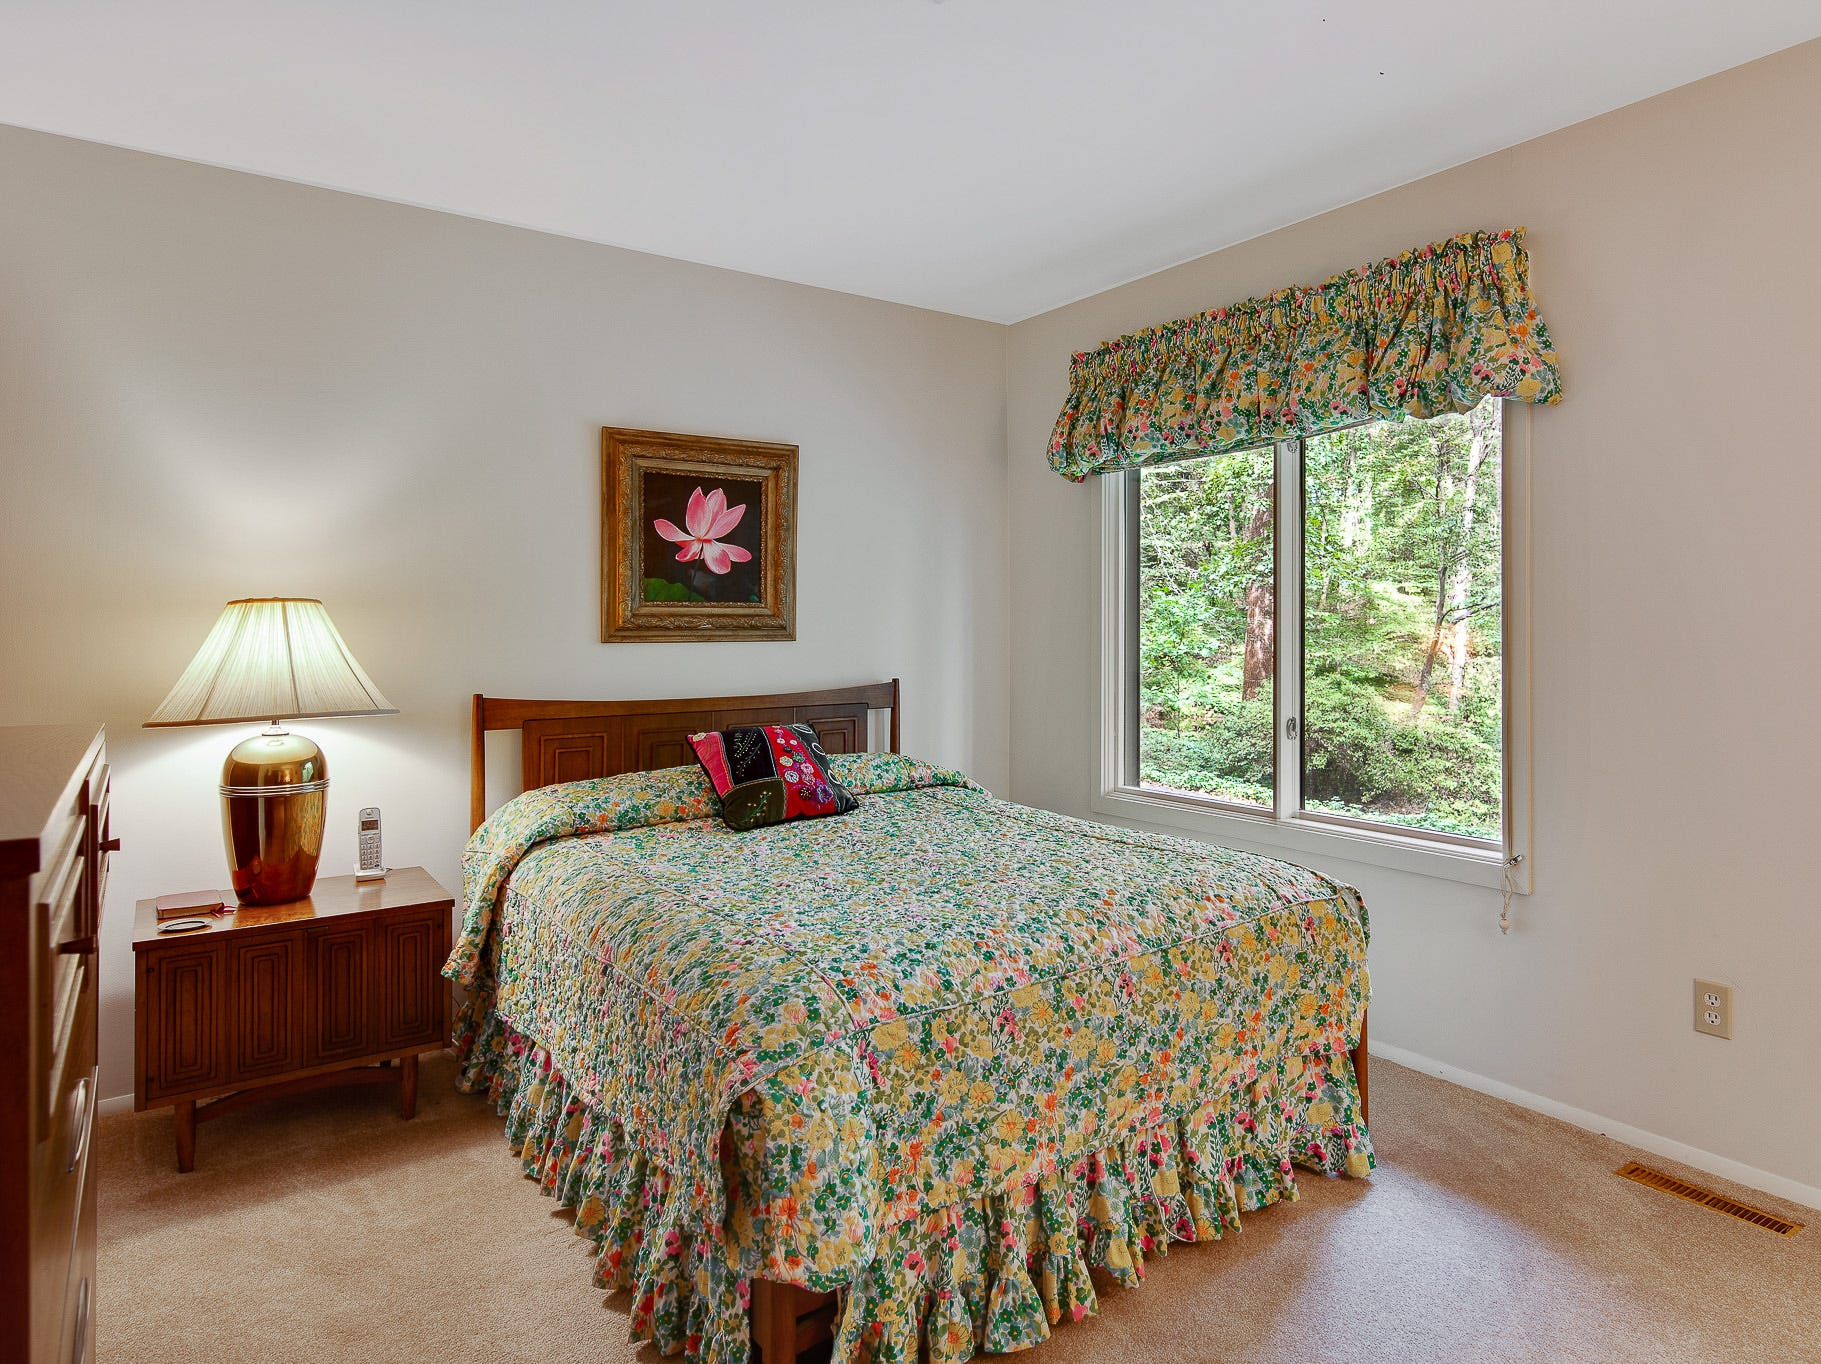 The house at 110 Thissell in Greenville has four bedrooms, all with great views of the outdoors.